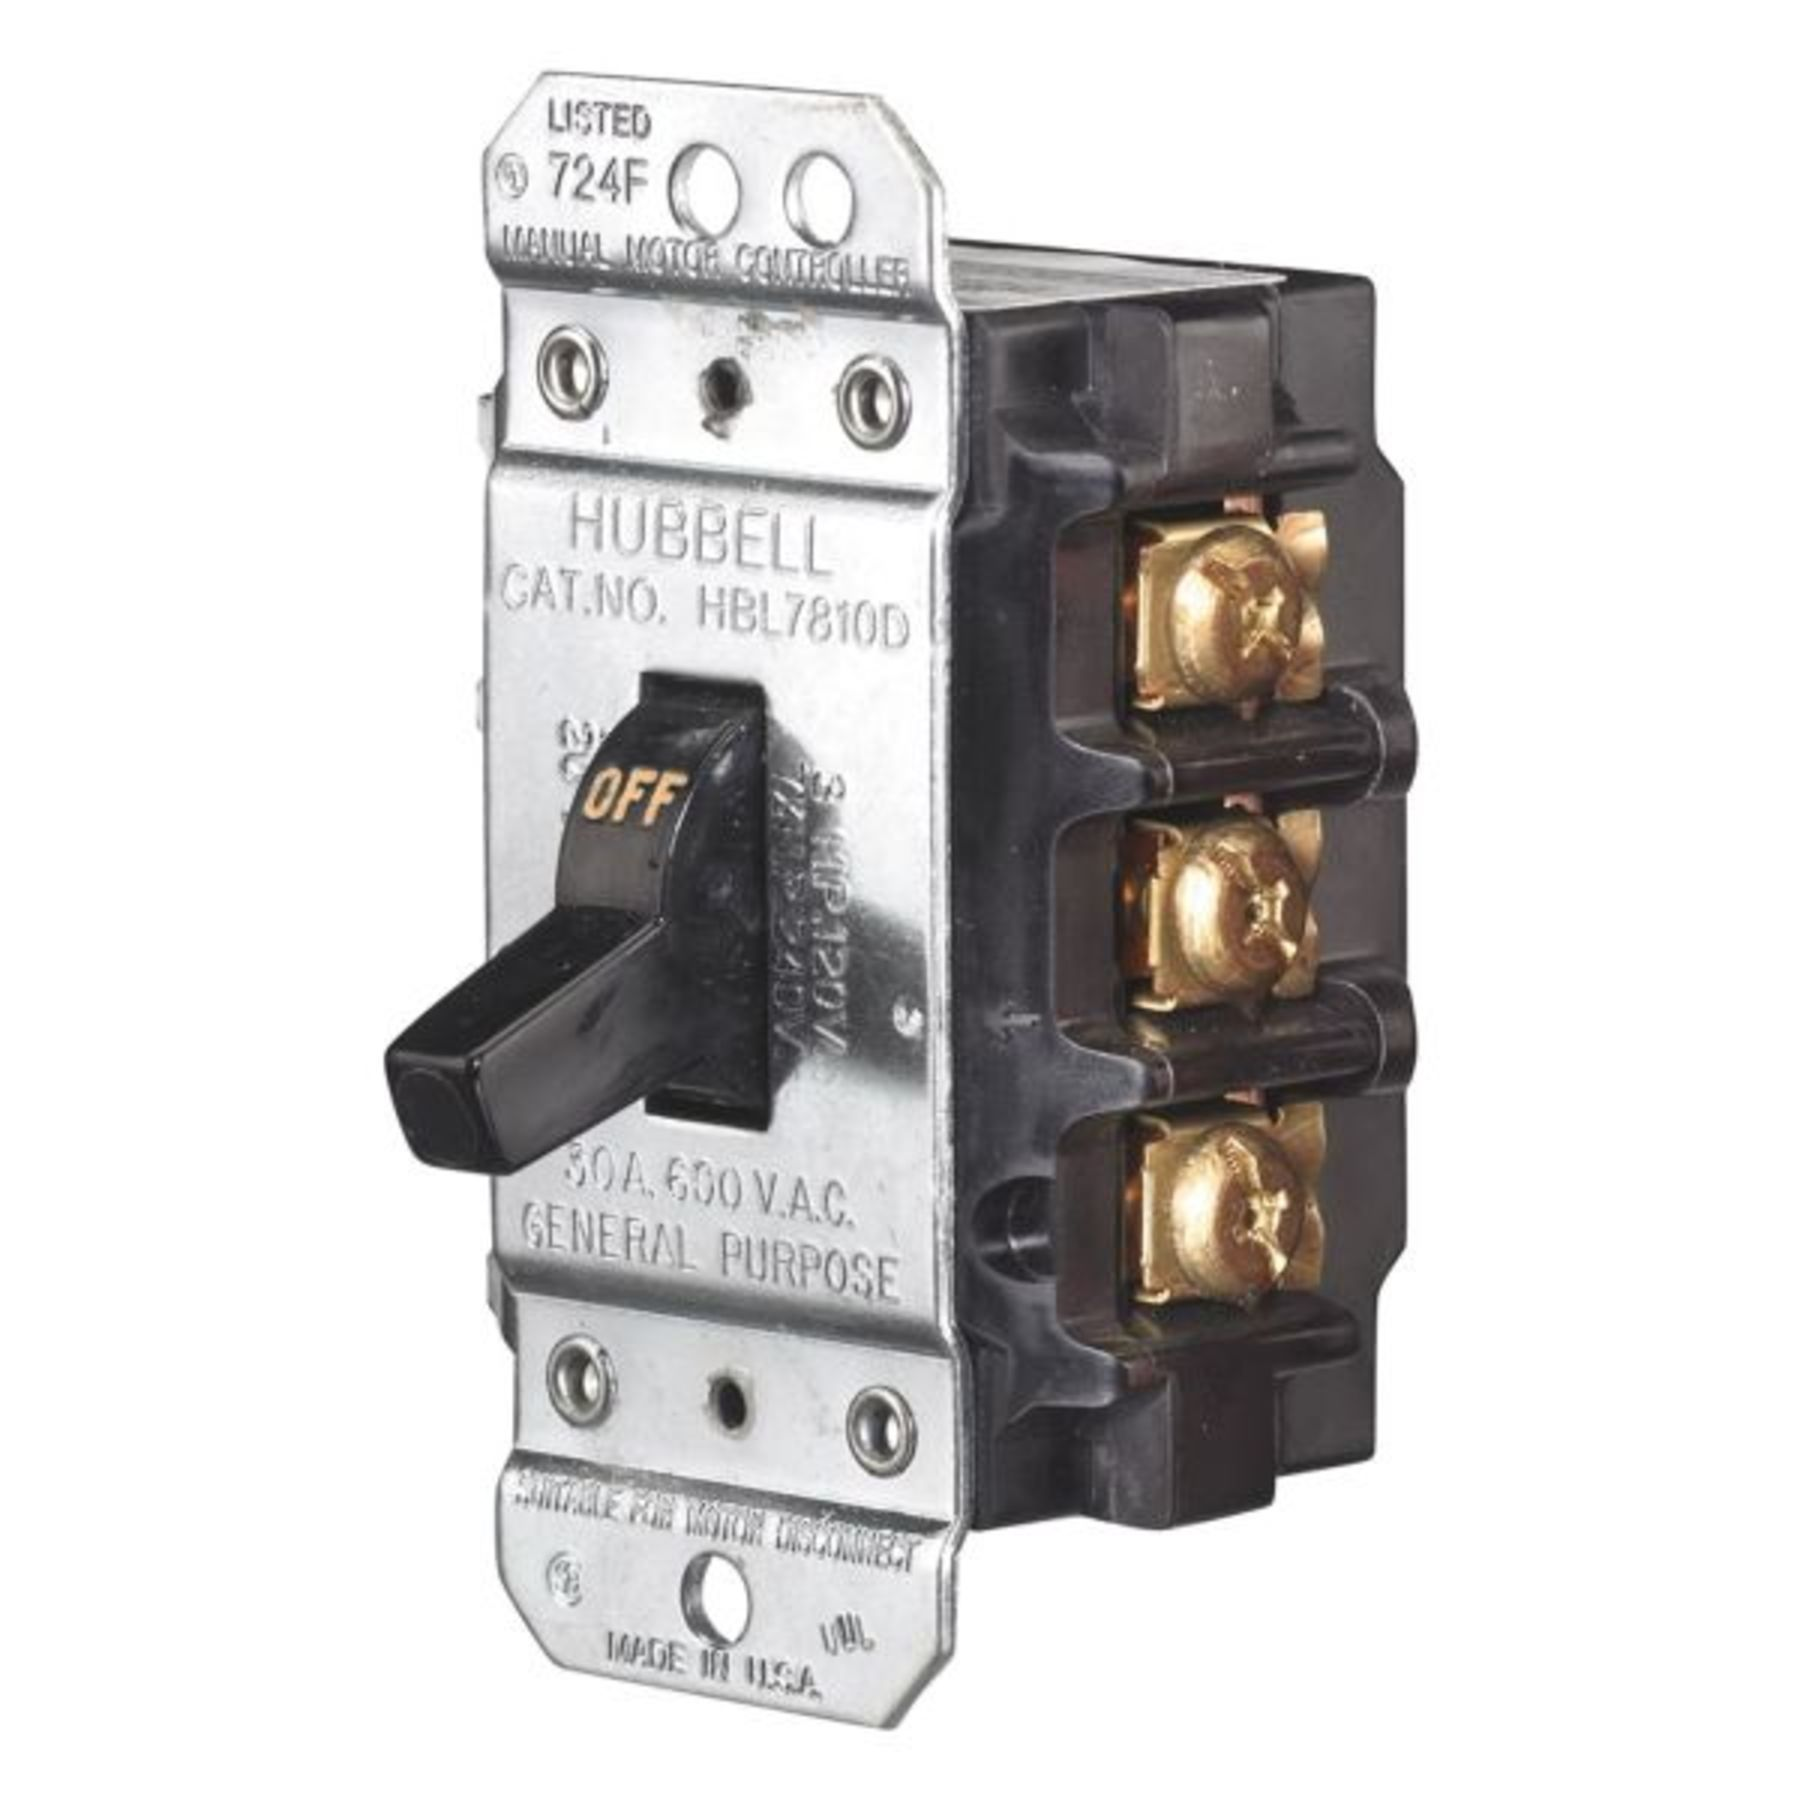 HBL7810D Manual Motor Disconnect Switch | CIRCUIT-LOCK In-Stock ...